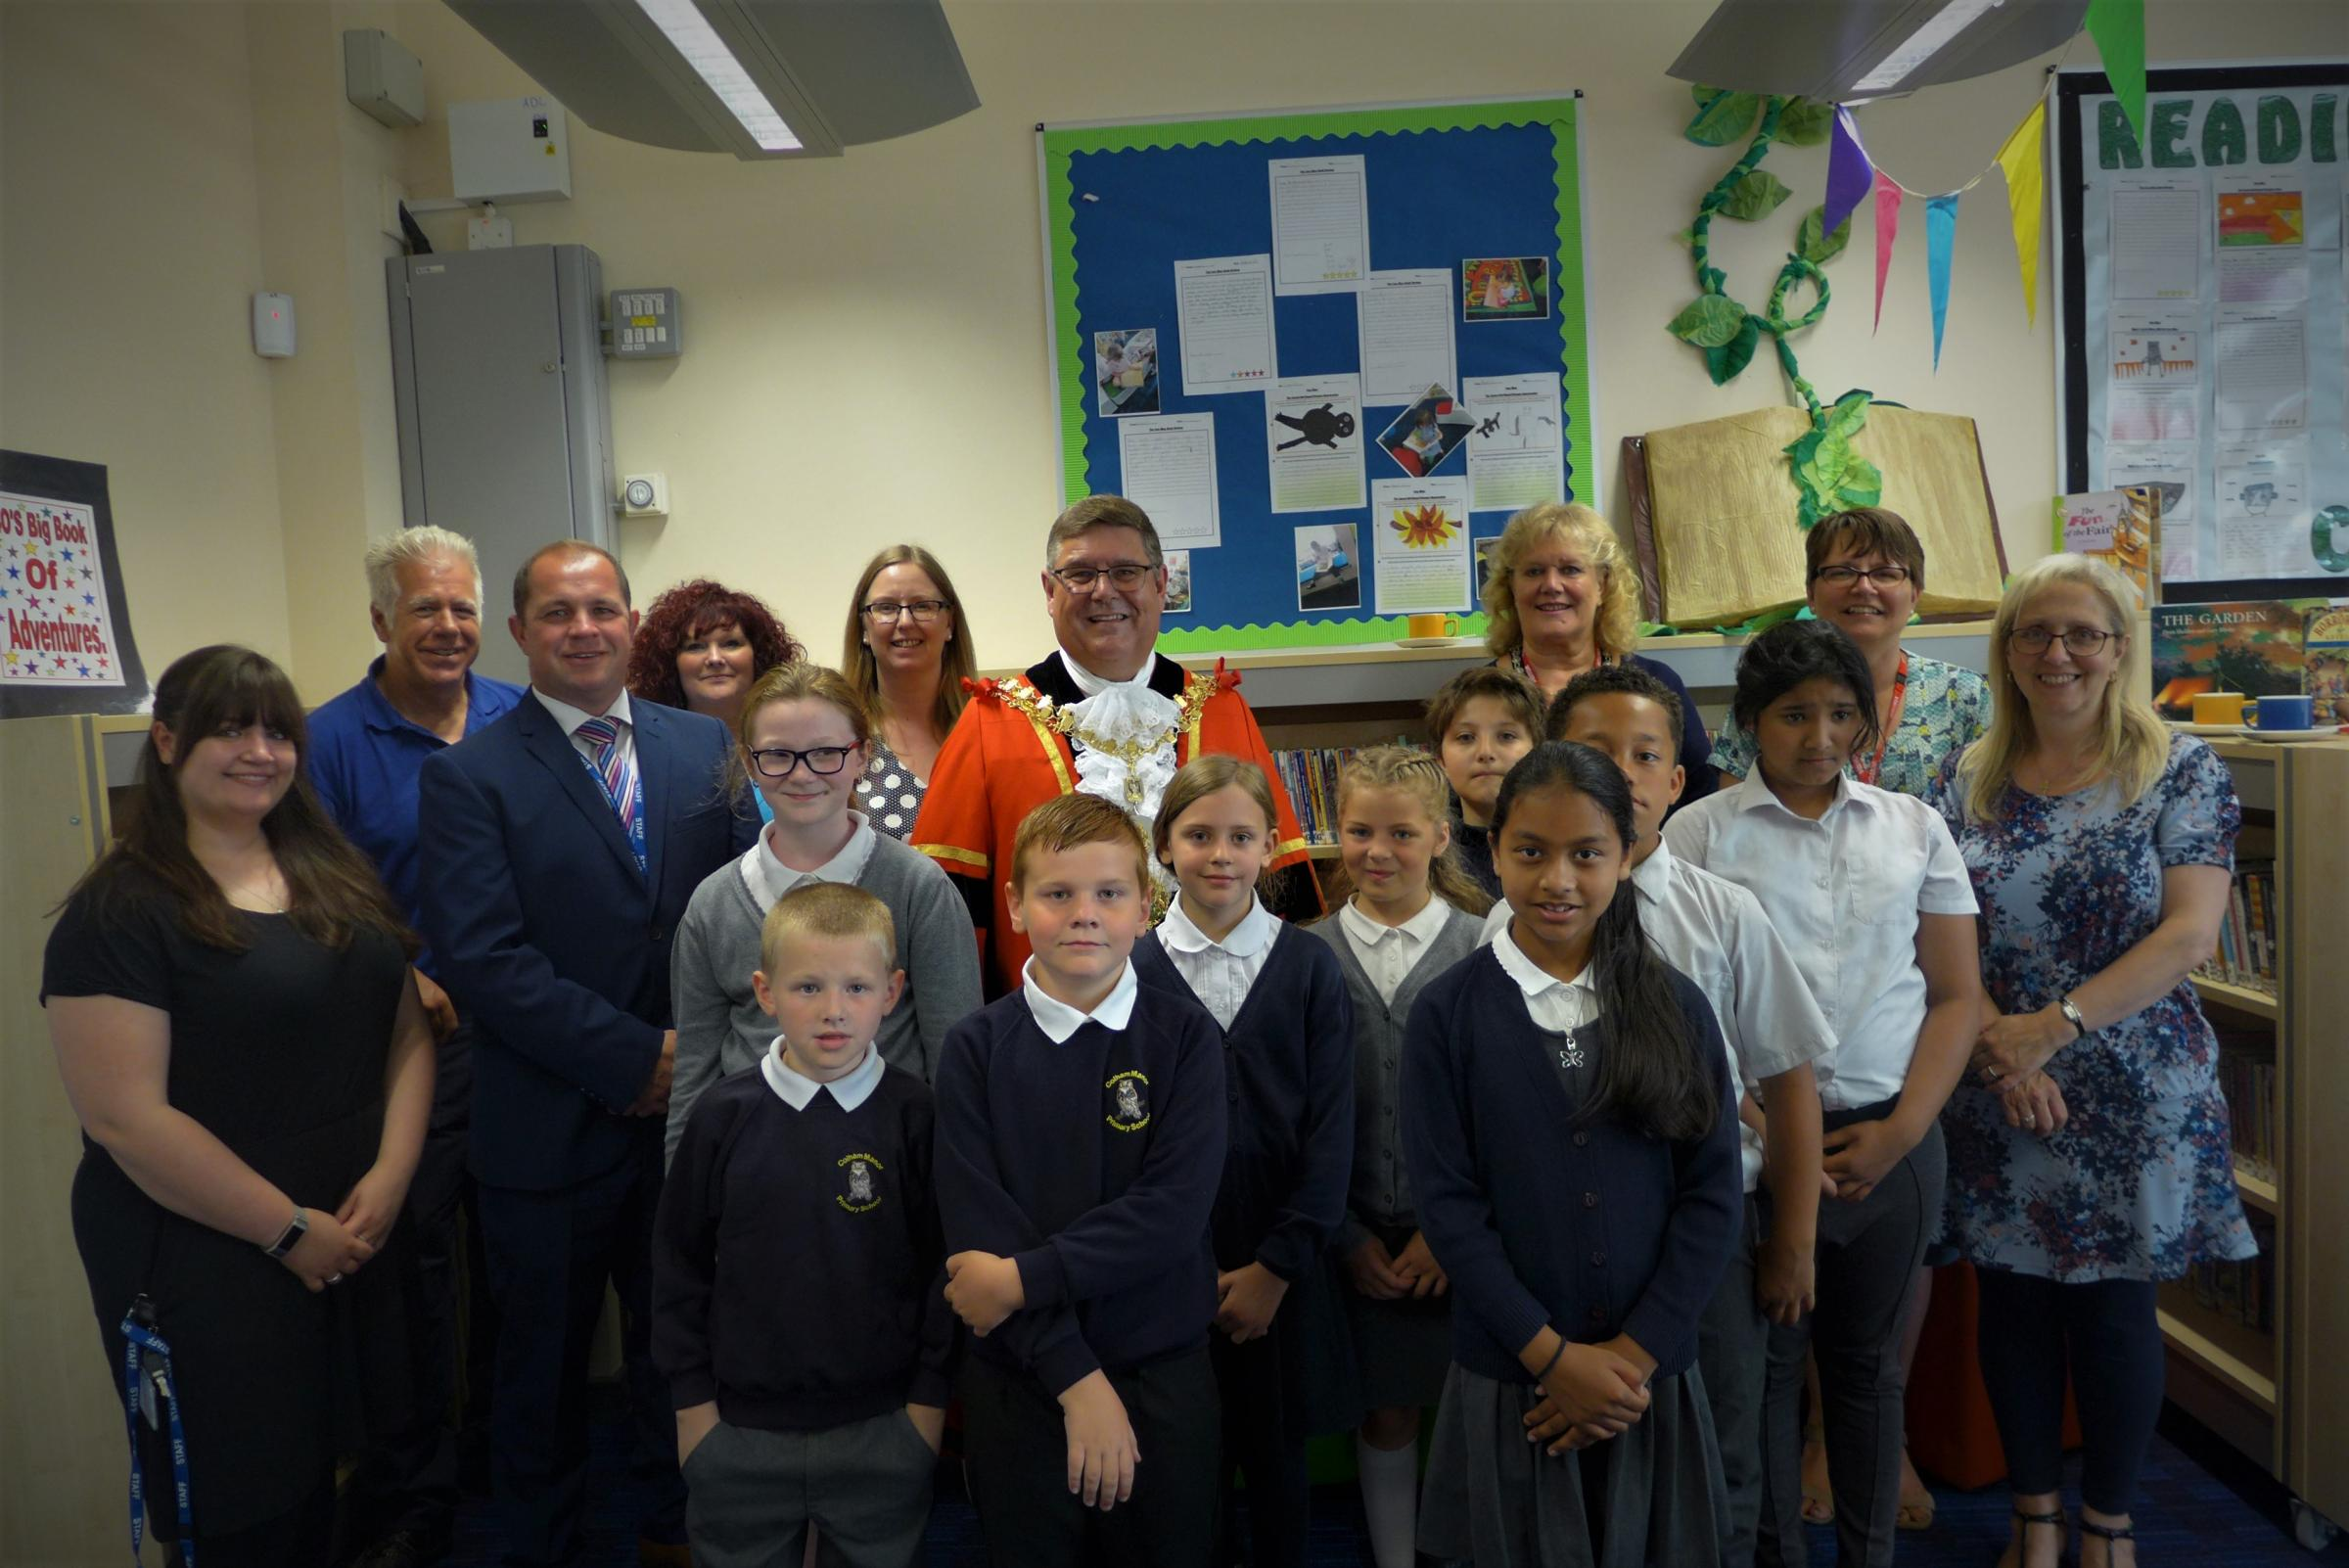 Students and staff at Colham Manor Primary School with Councillor John Morgan, the Mayor of Hillingdon